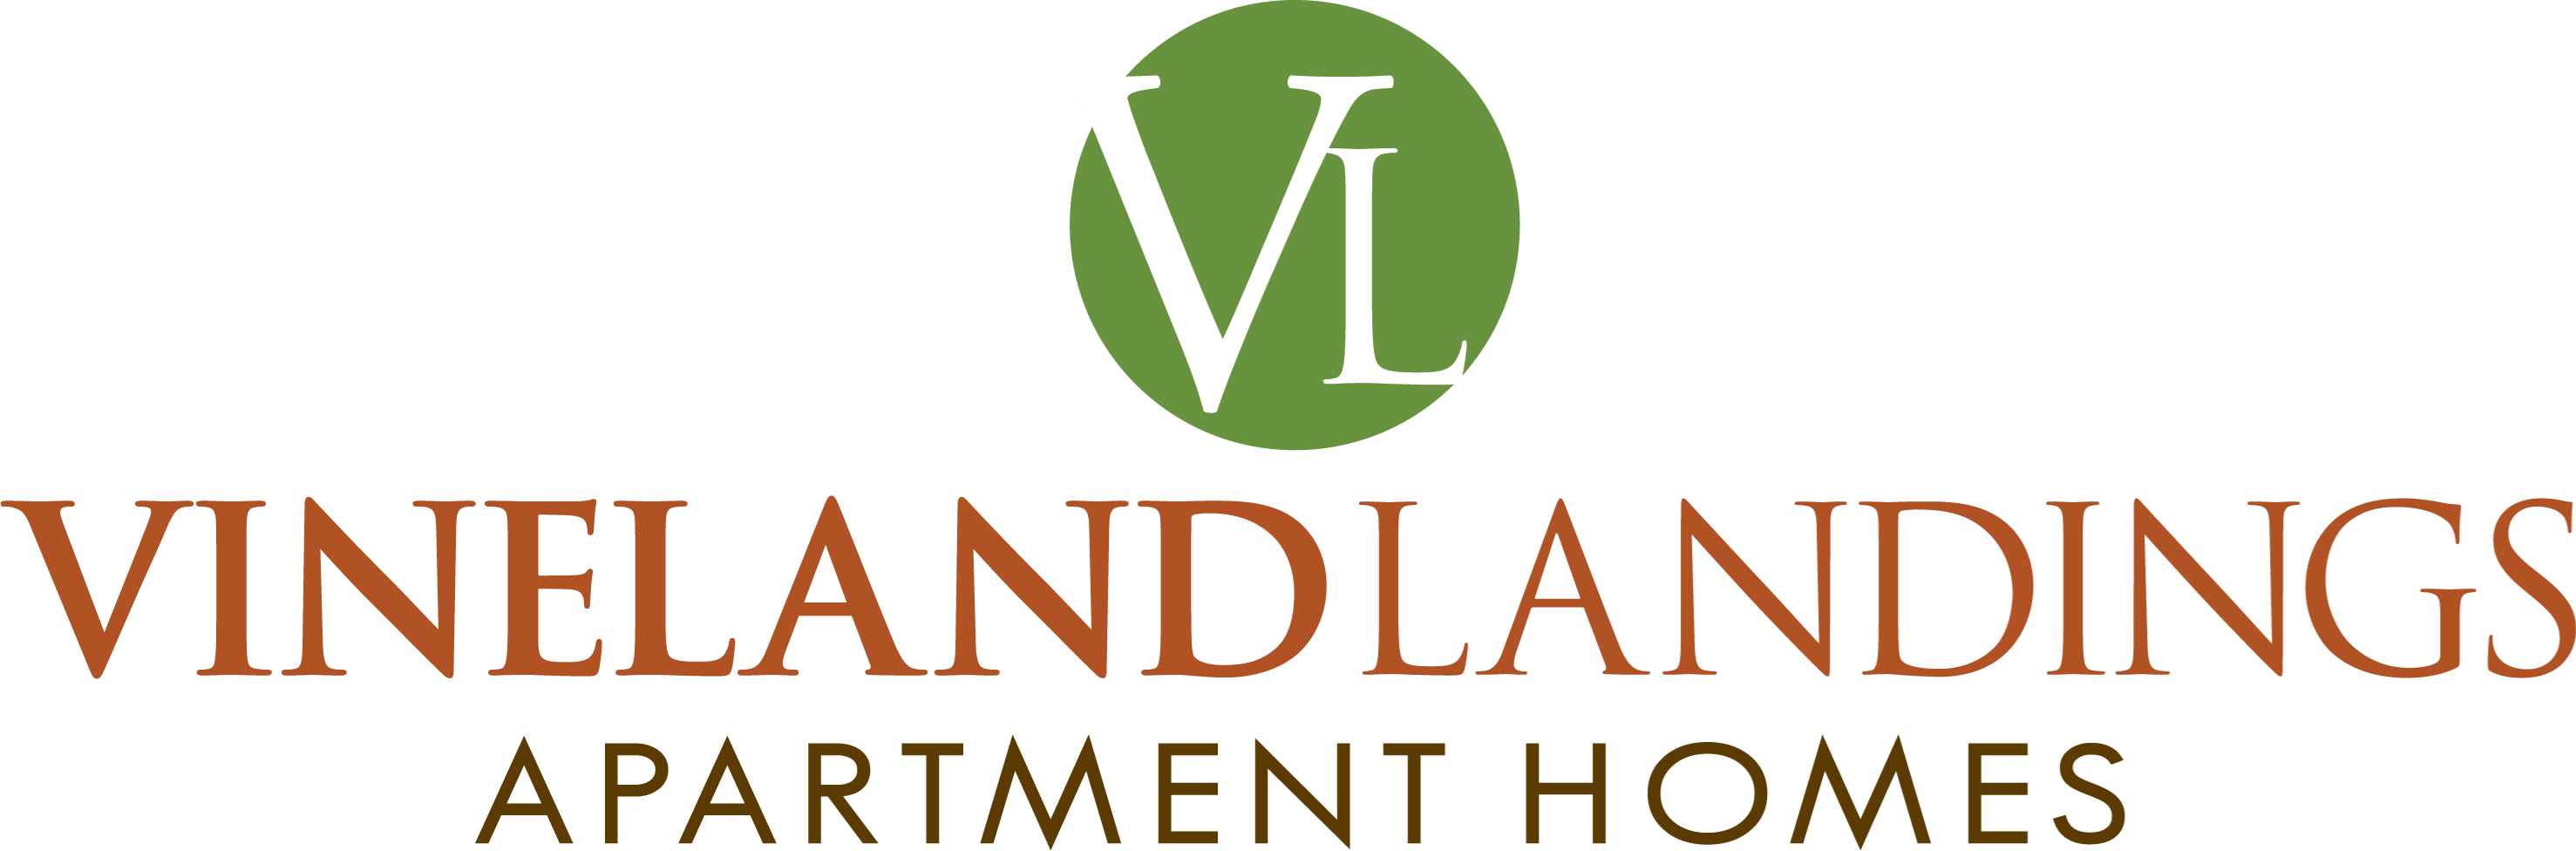 Vineland Landings Apartments in Kissimmee, FL. Make this community your new home or visit other Concord Rents communities at ConcordRents.com. Logo